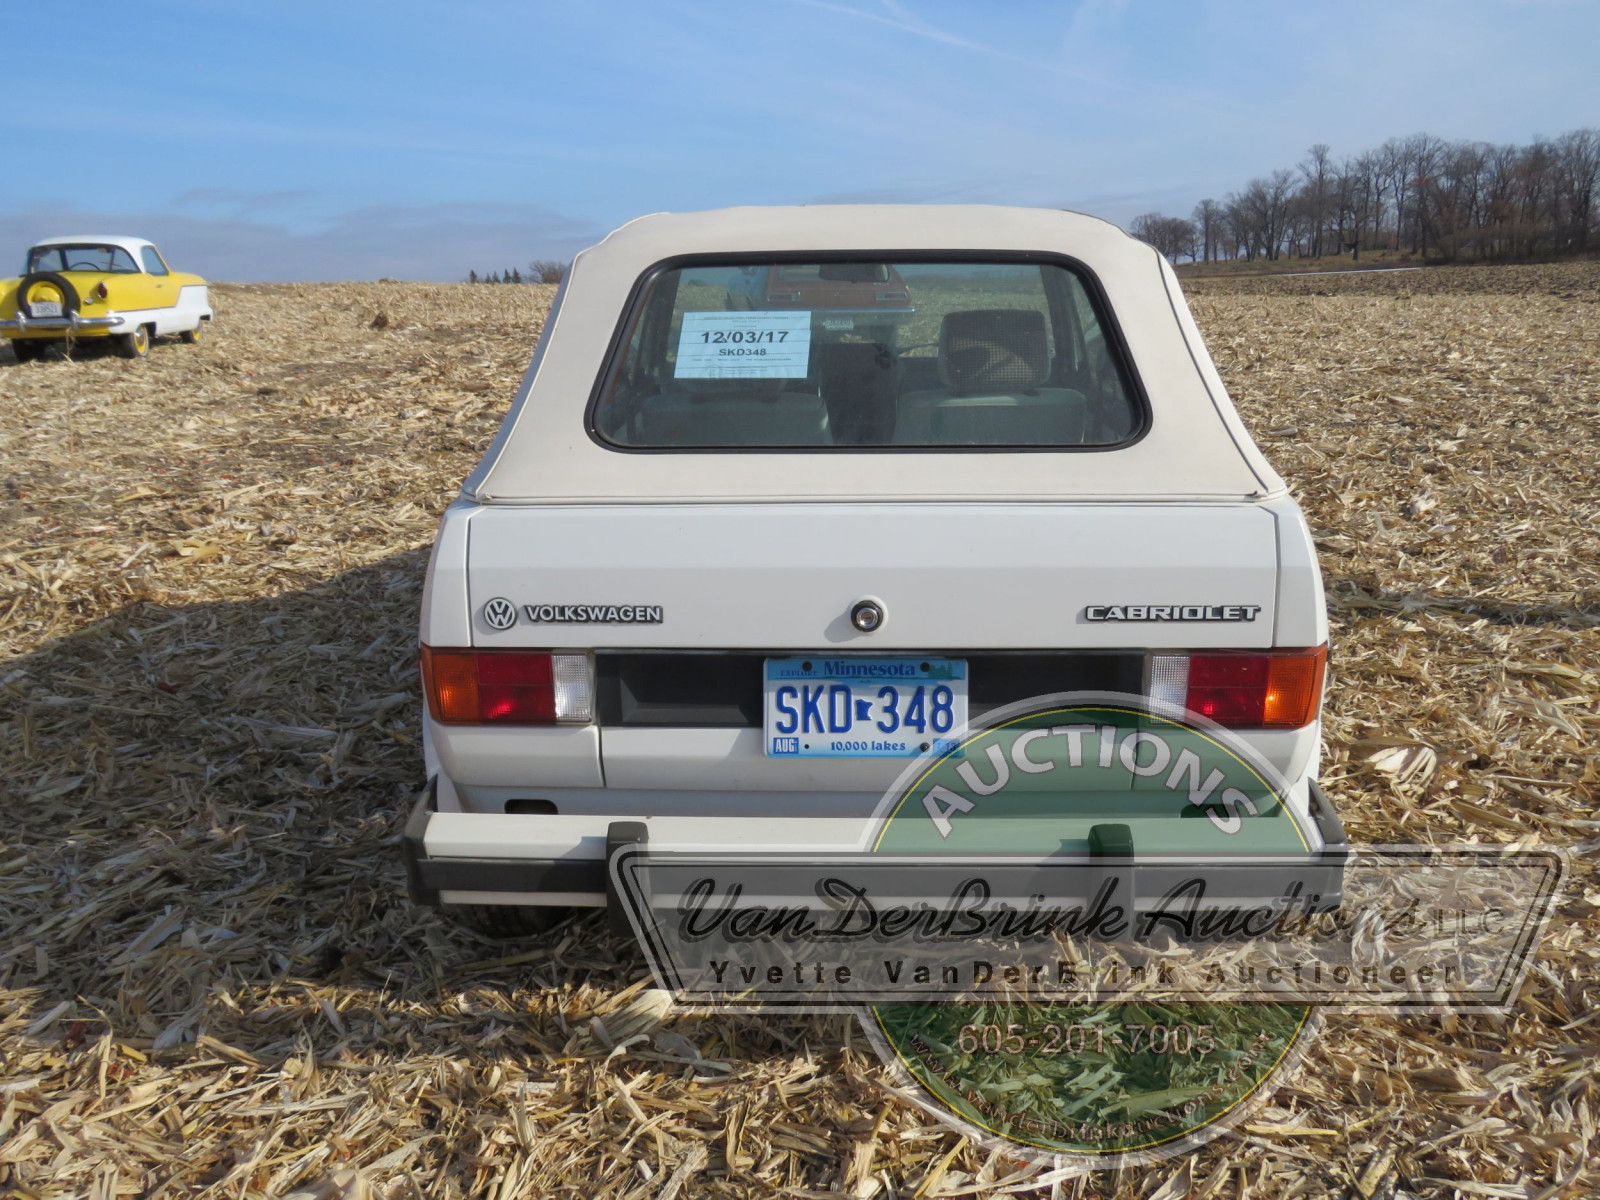 1985 VW Rabbit Karmann Convertible - Image 6